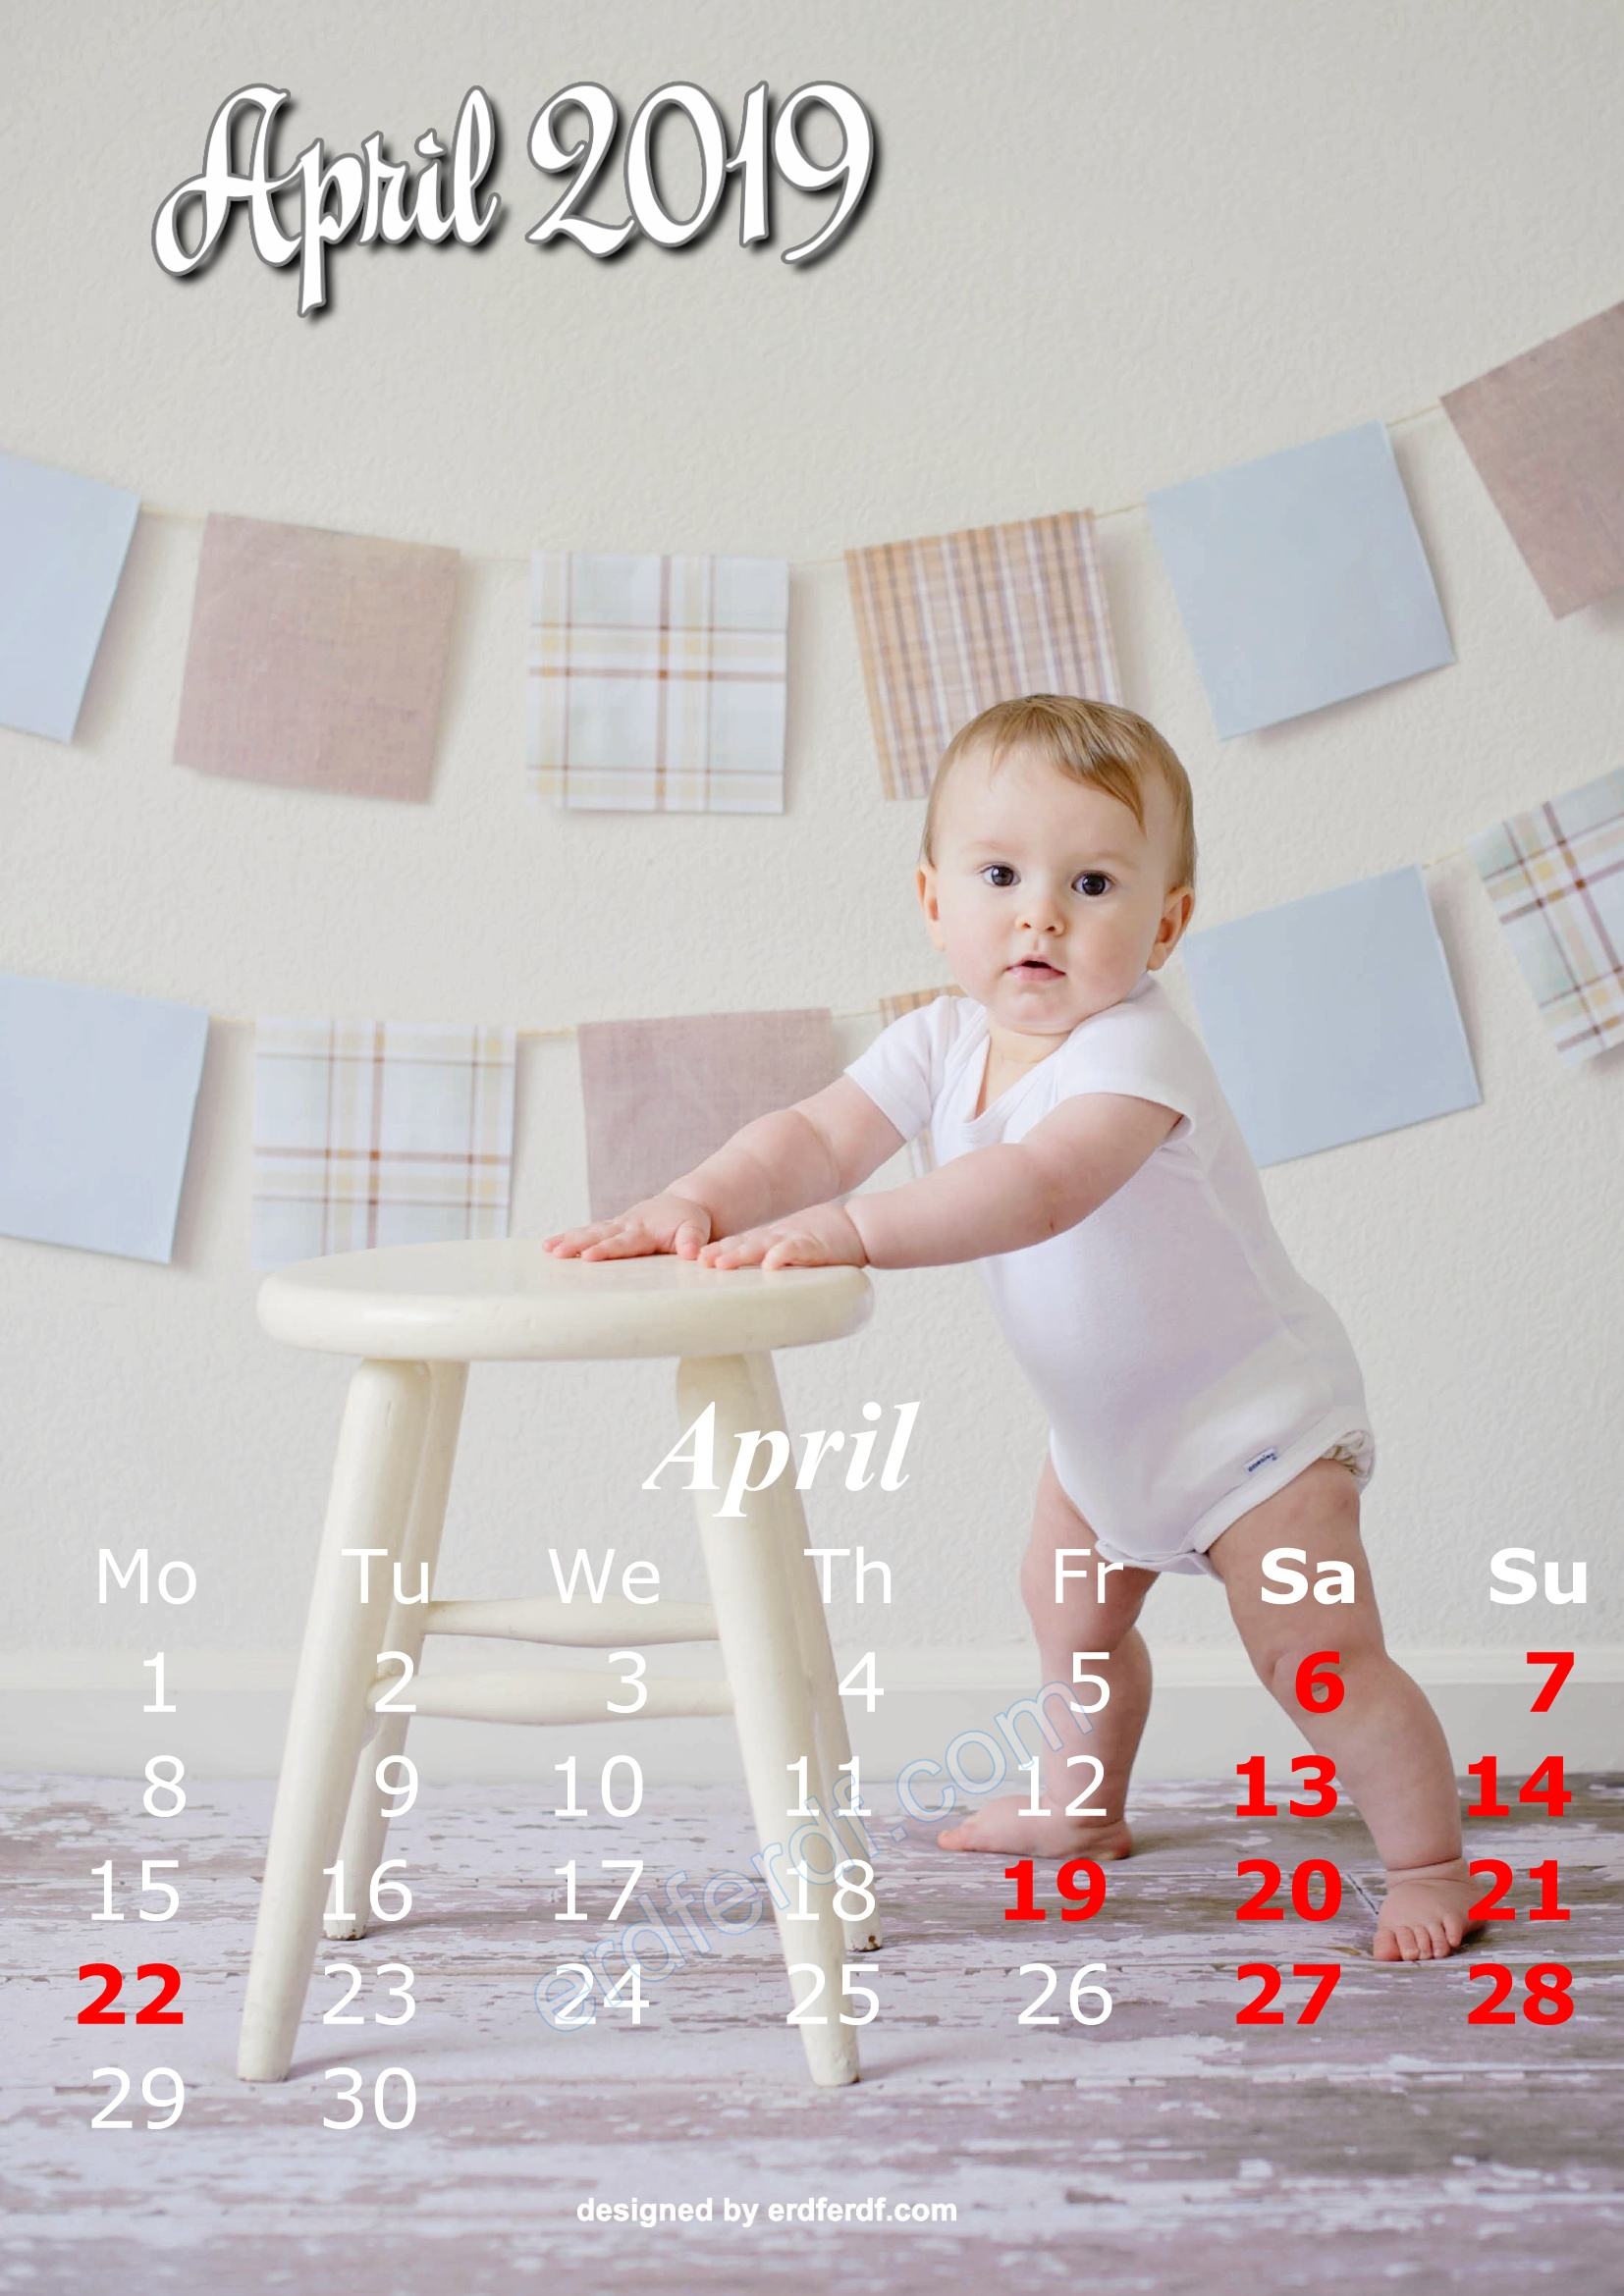 4 April Cute Kids Calendar 2019 Printable Free Design